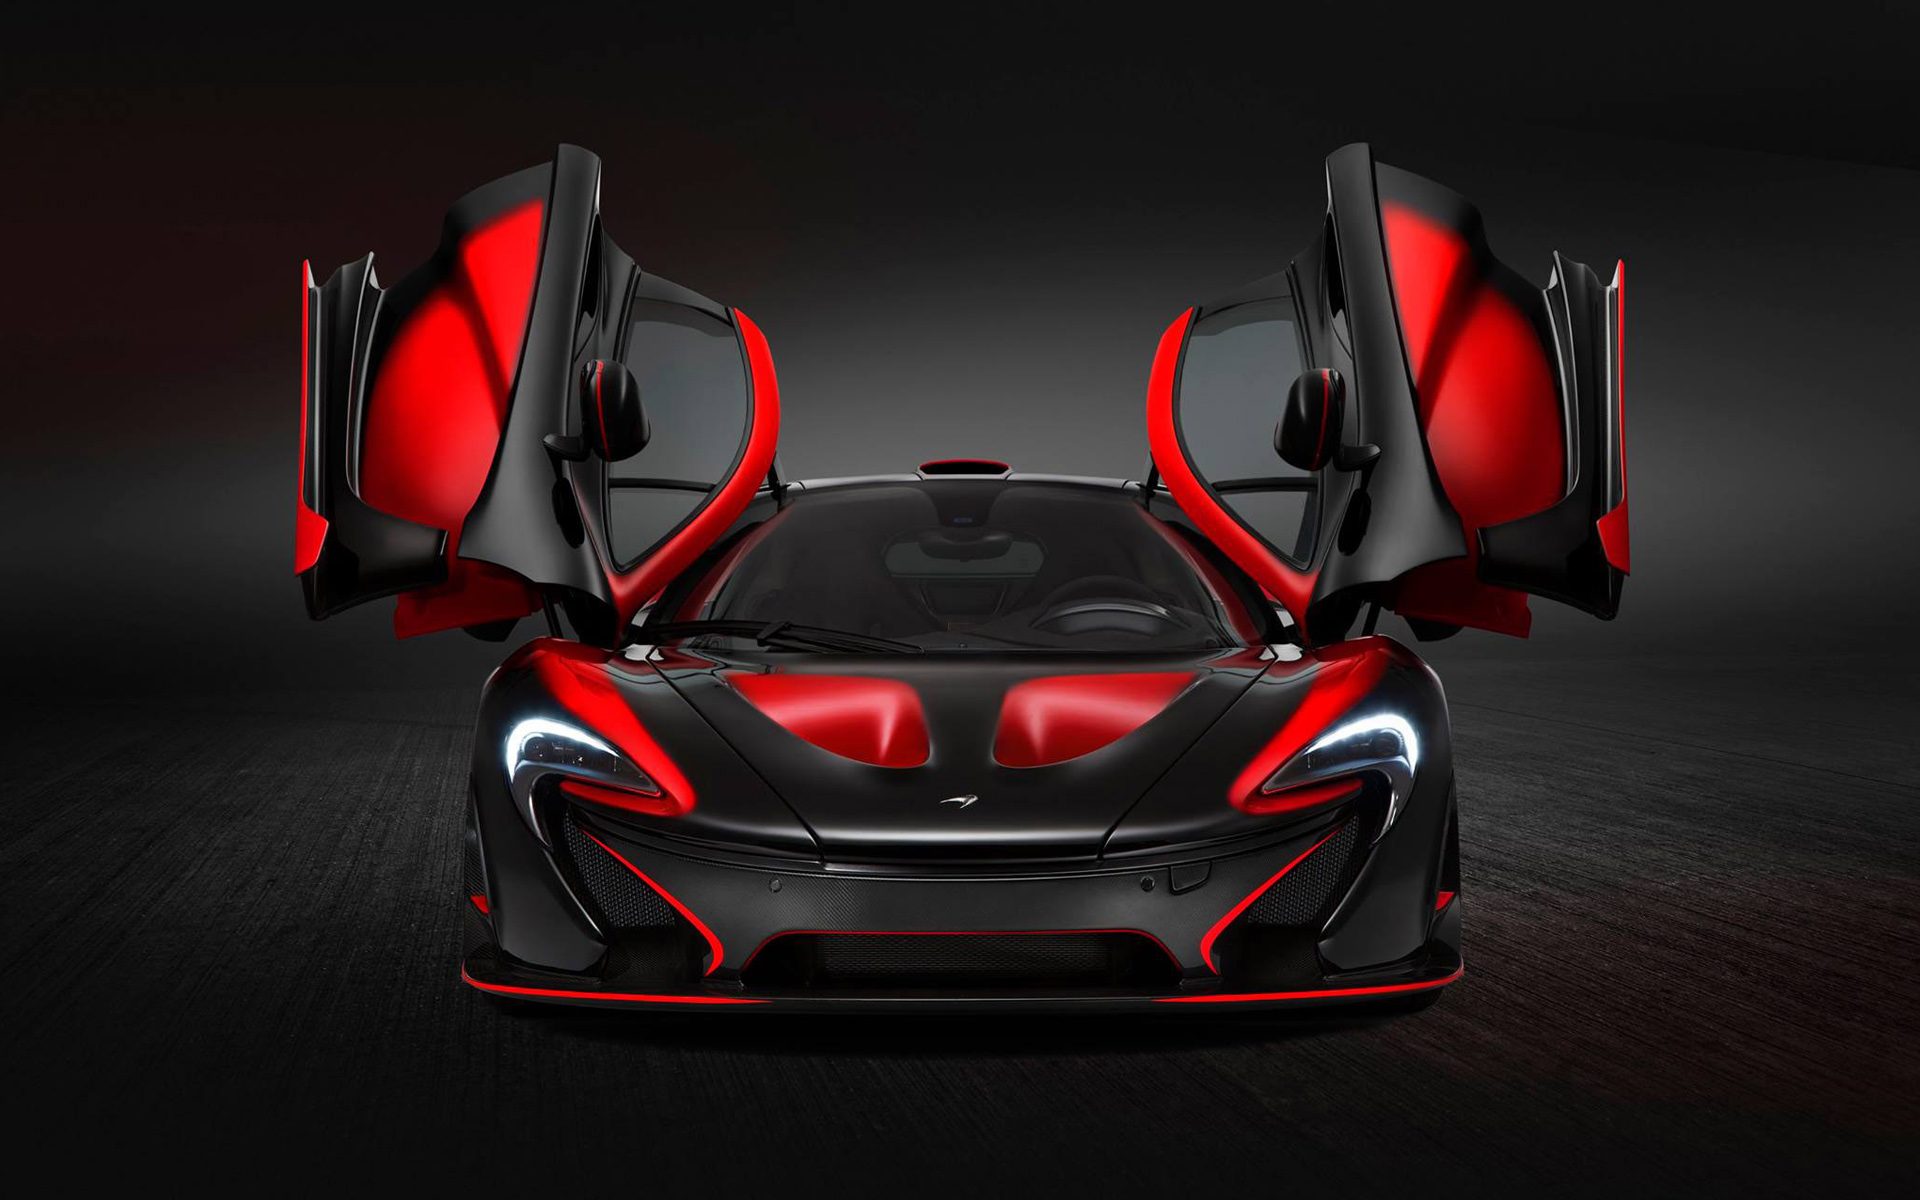 2015 mclaren p1 mclaren special operations wallpaper hd car wallpapers id 5404. Black Bedroom Furniture Sets. Home Design Ideas